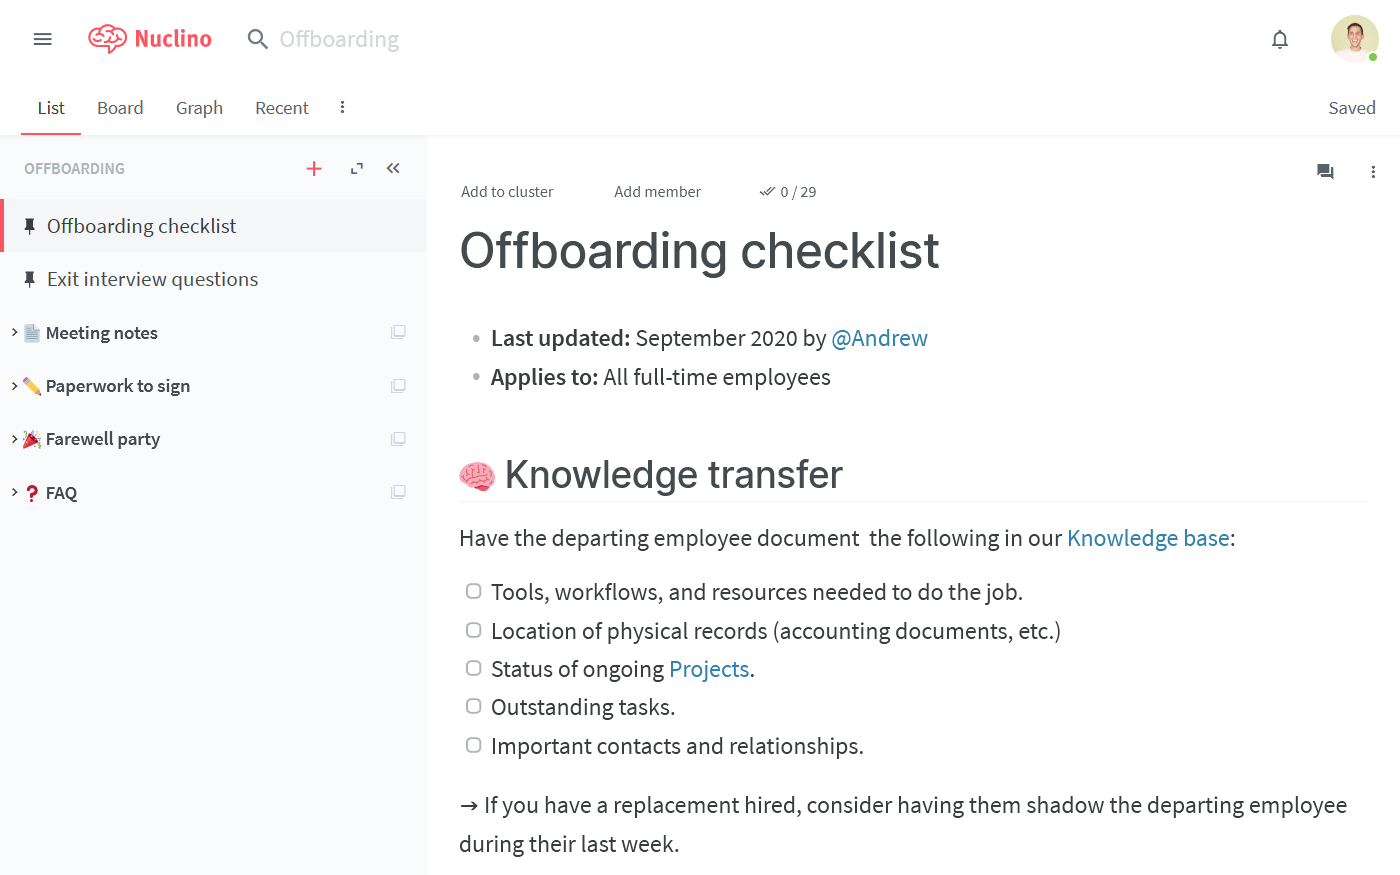 Employee offboarding checklist example in Nuclino